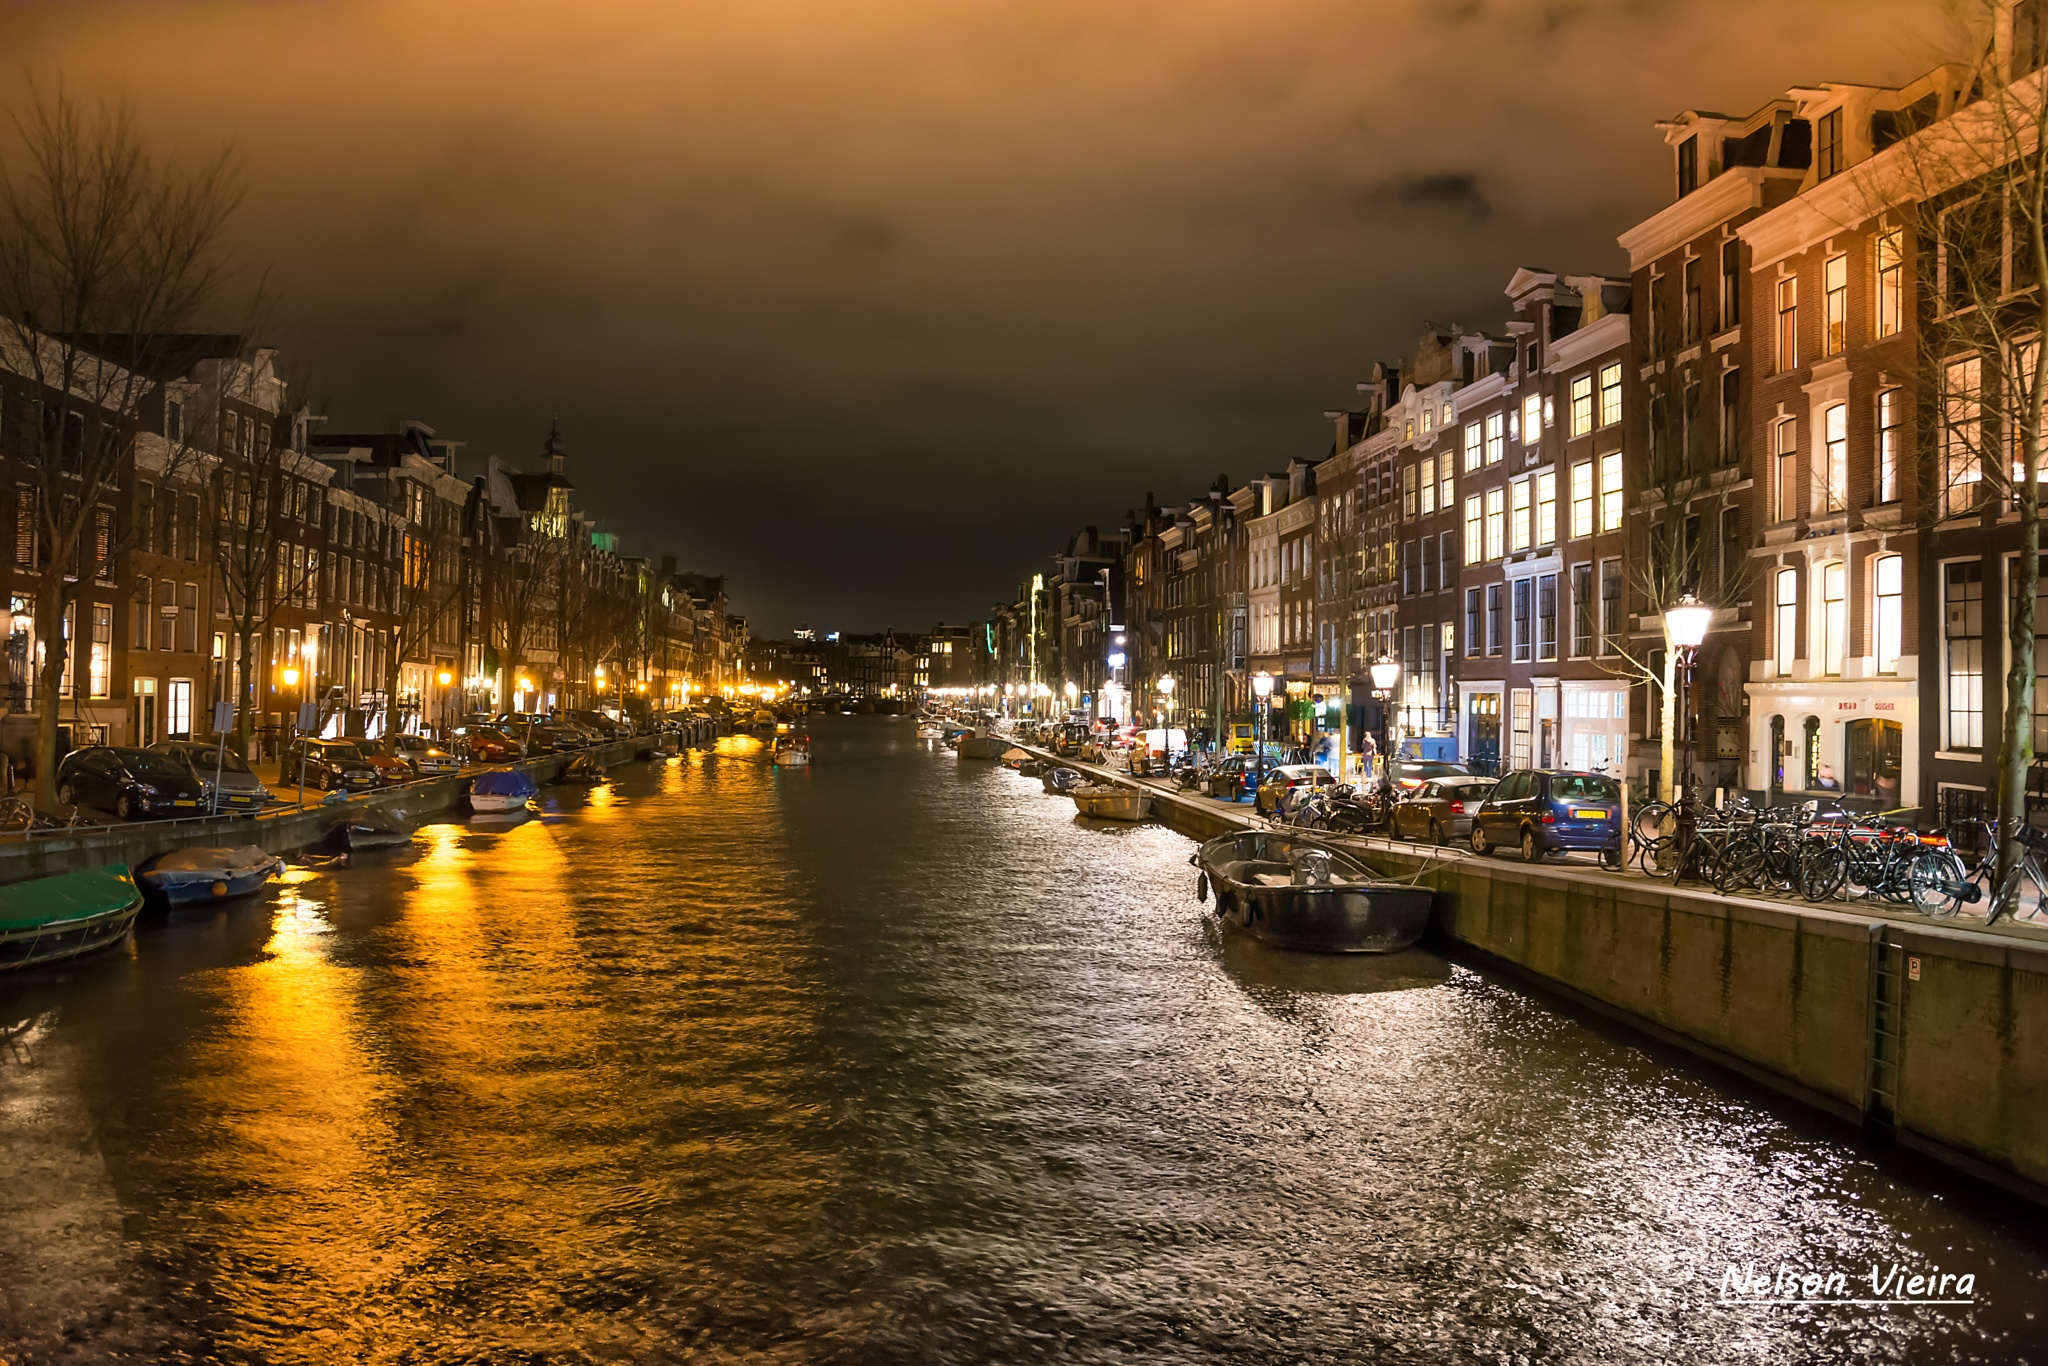 Amsterdam, City of Lights by Nelson Vieira